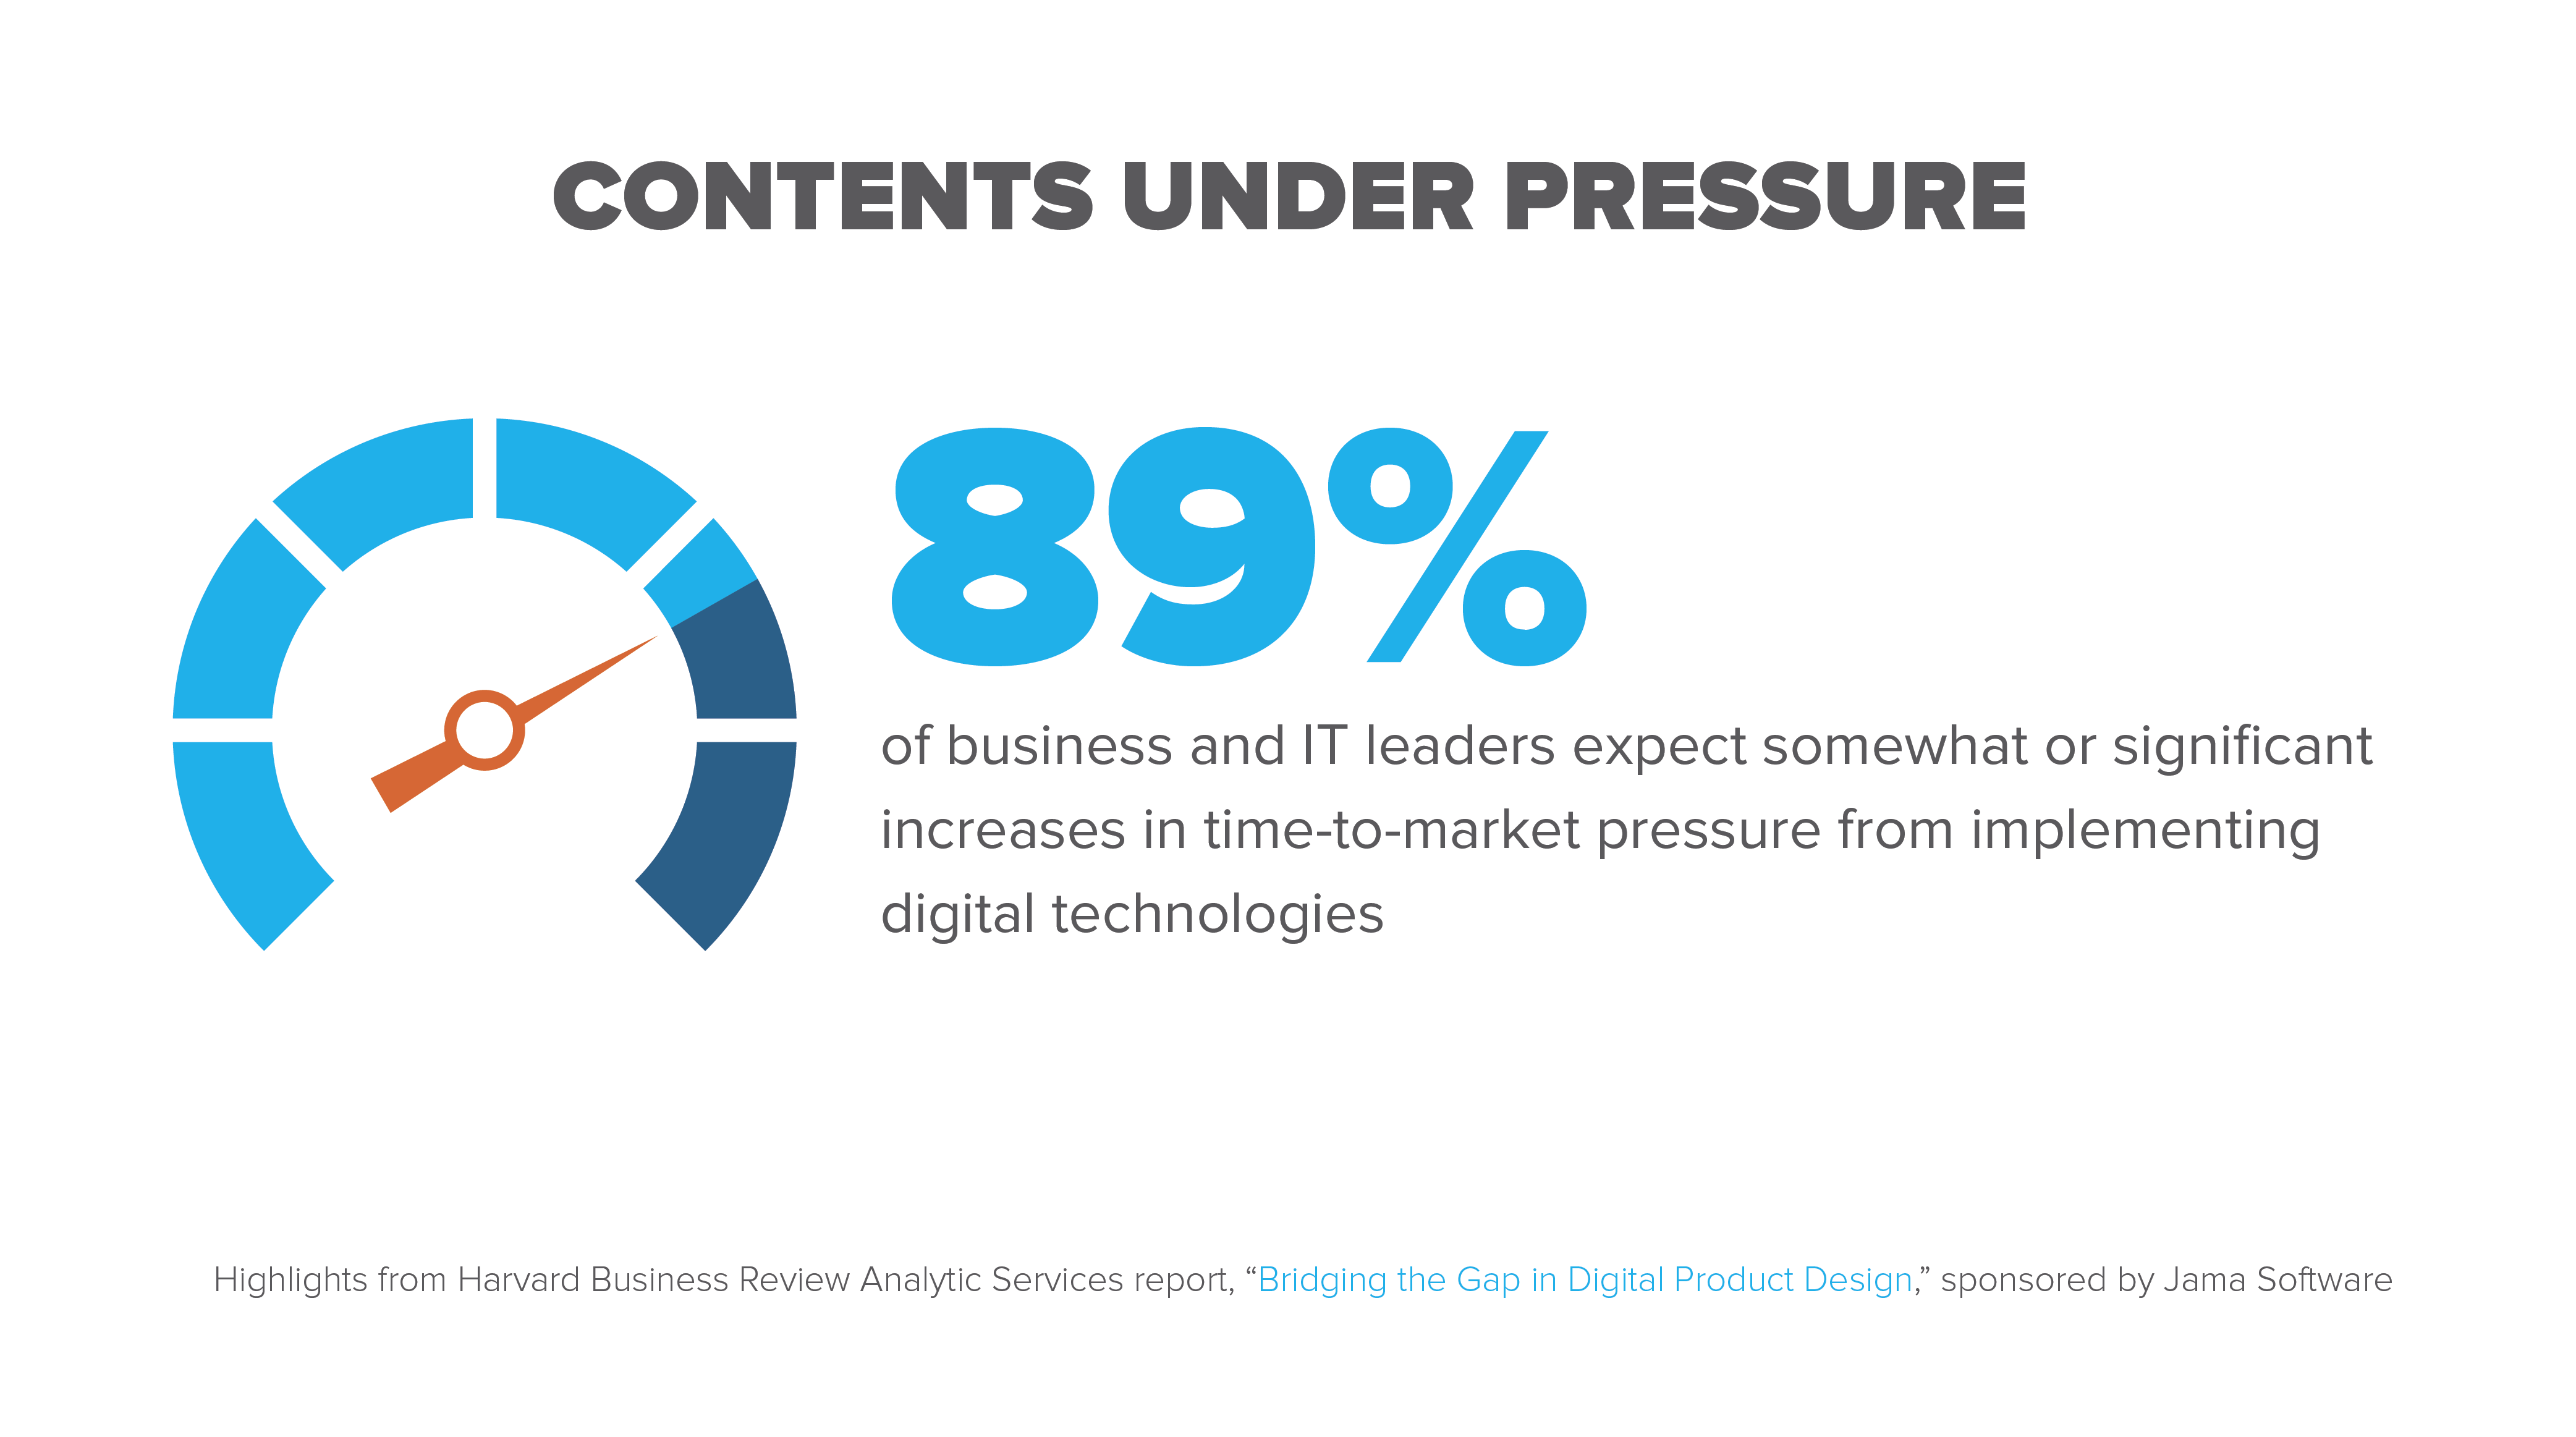 89% of business and IT leaders expect somewhat or significant increases in time-to-market pressure from implementing digital technologies